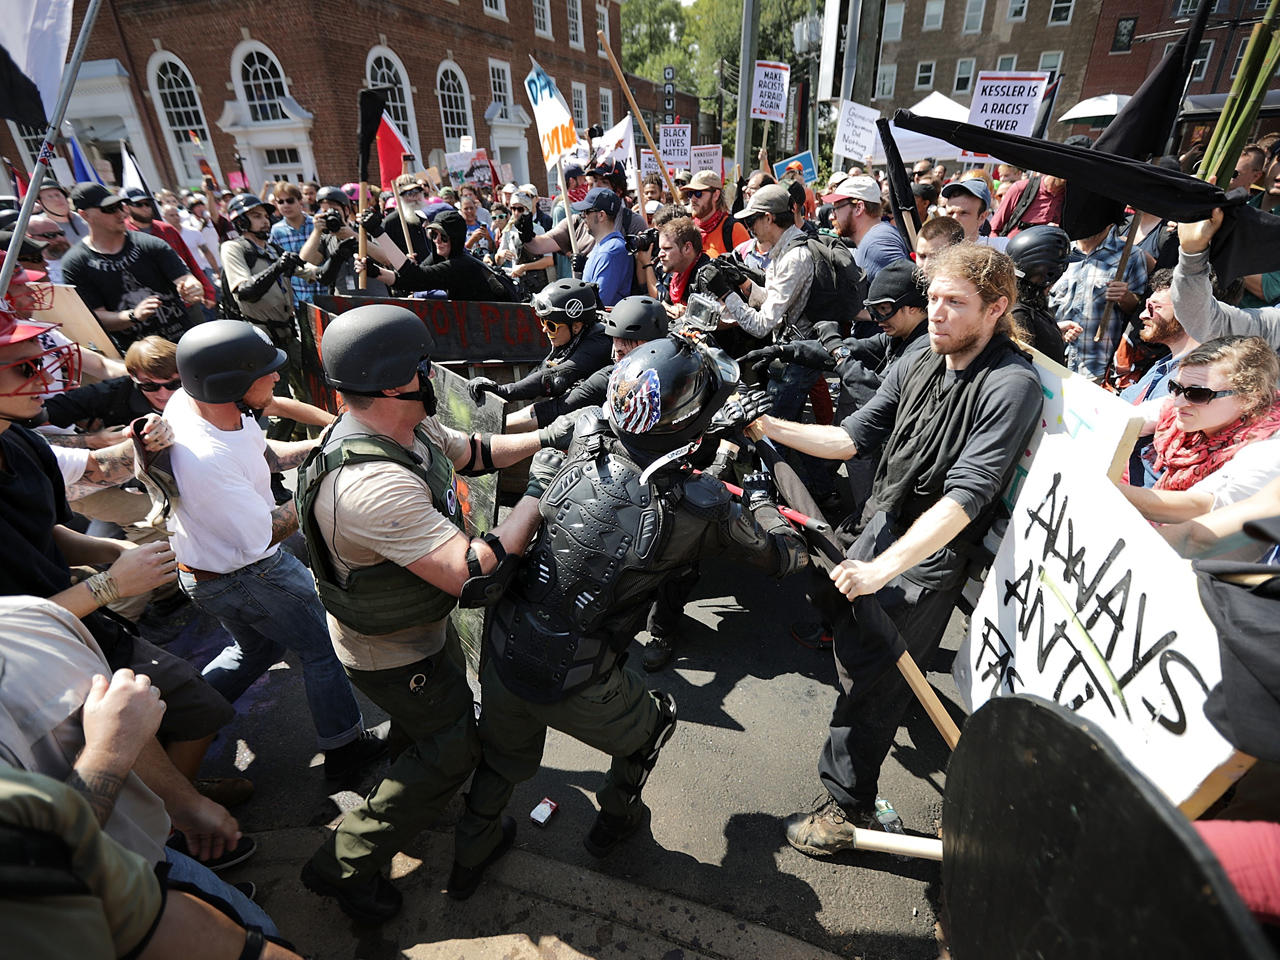 b822841cd02c1 Virginia governor declares state of emergency ahead of Charlottesville  rally anniversary